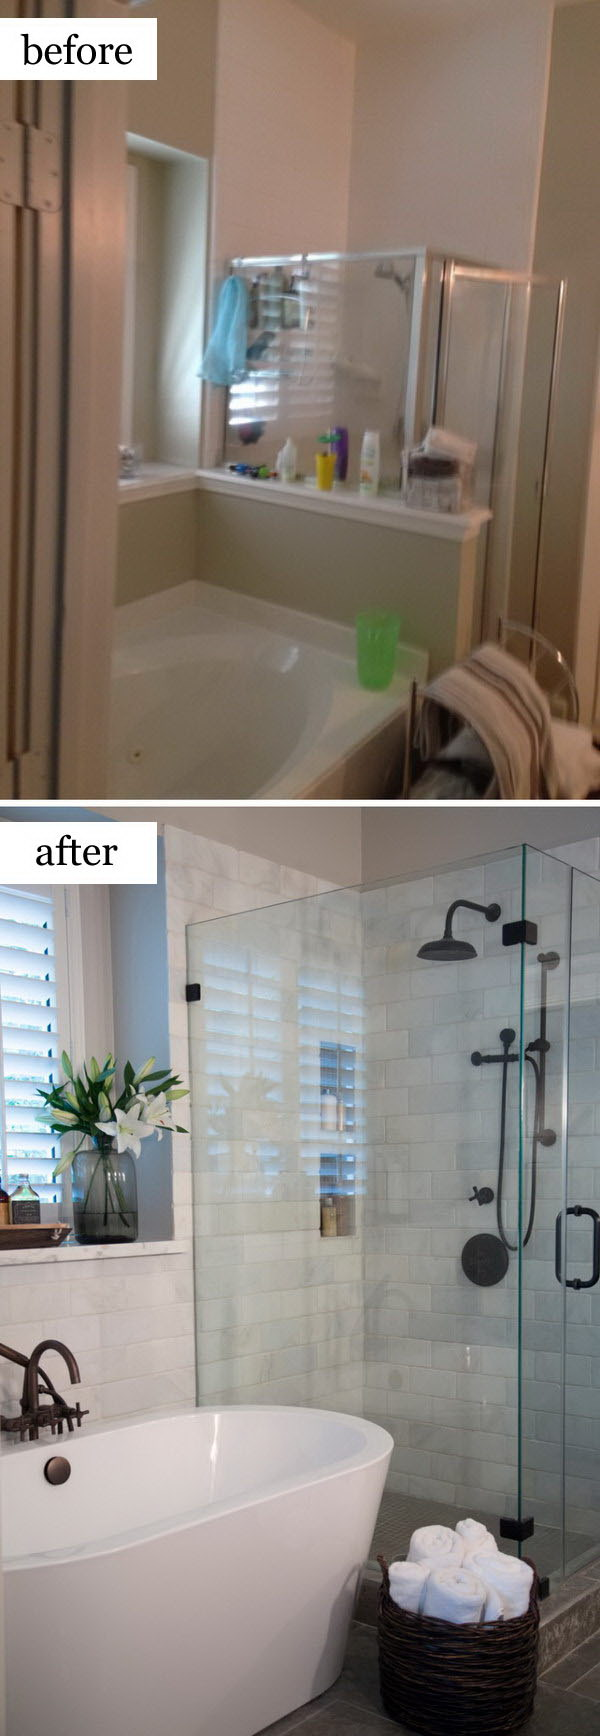 bathroom make over ideas before and after makeovers 20 most beautiful bathroom remodeling ideas noted list 7293